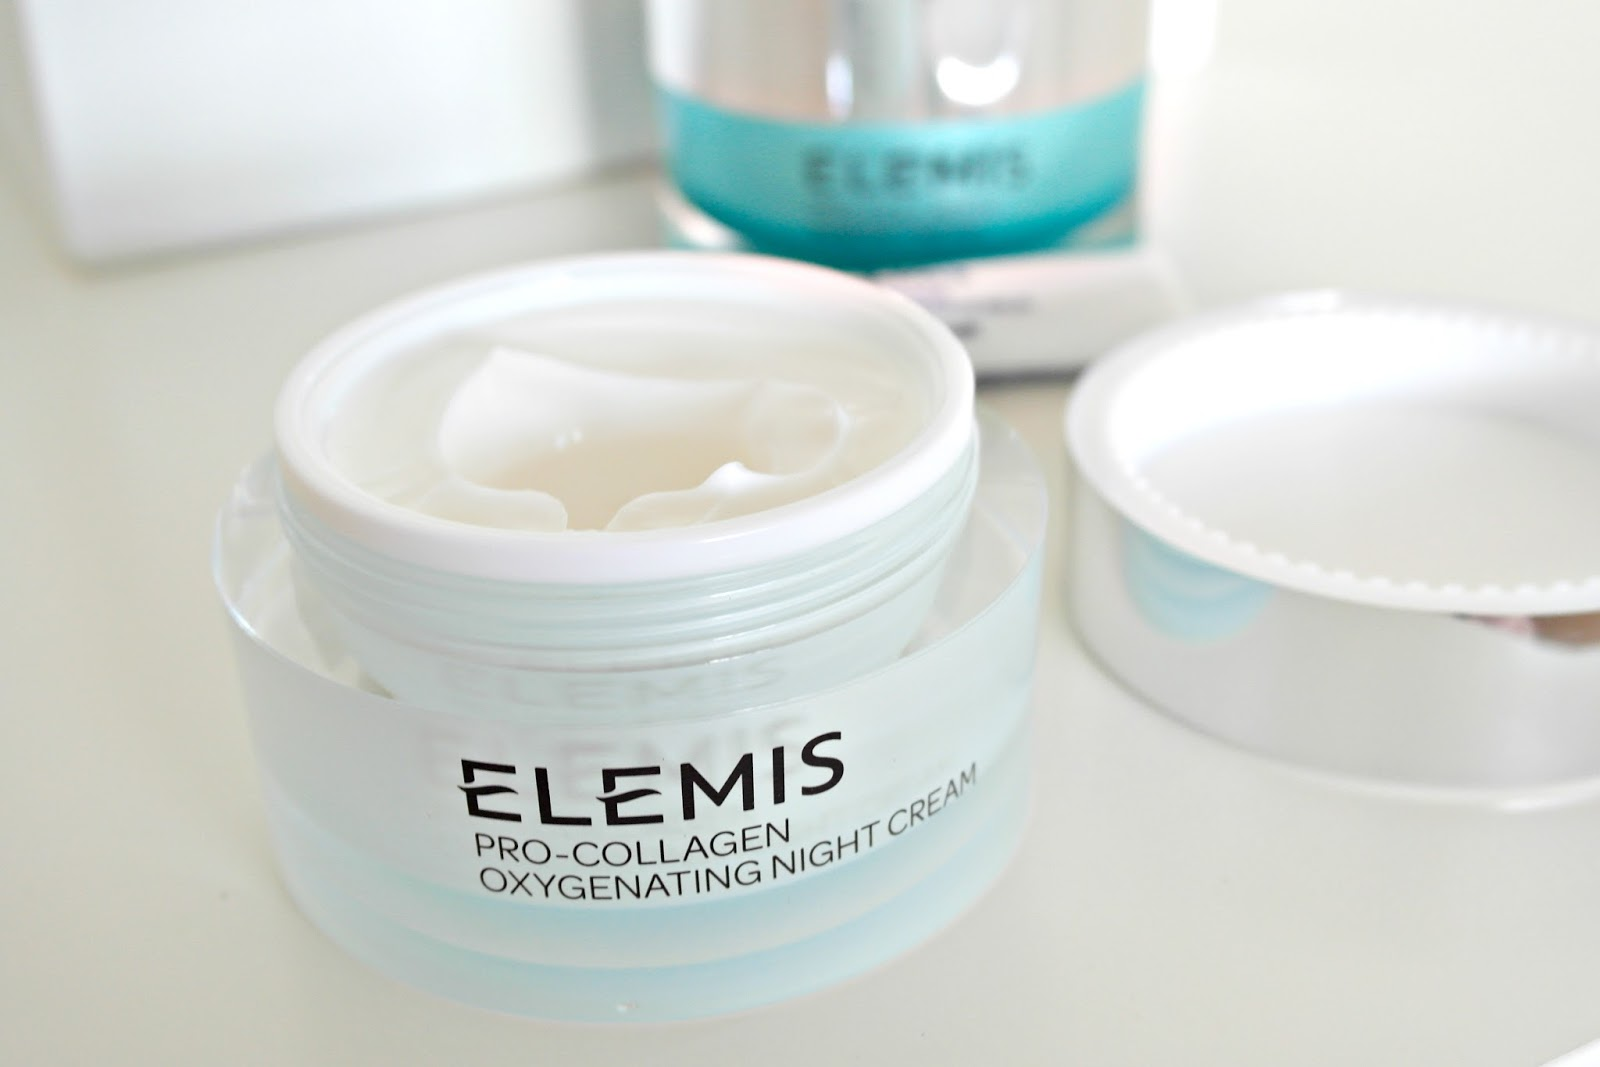 Elemis Pro-Collagen Marine Cream 100ml Review, Beauty Blogger